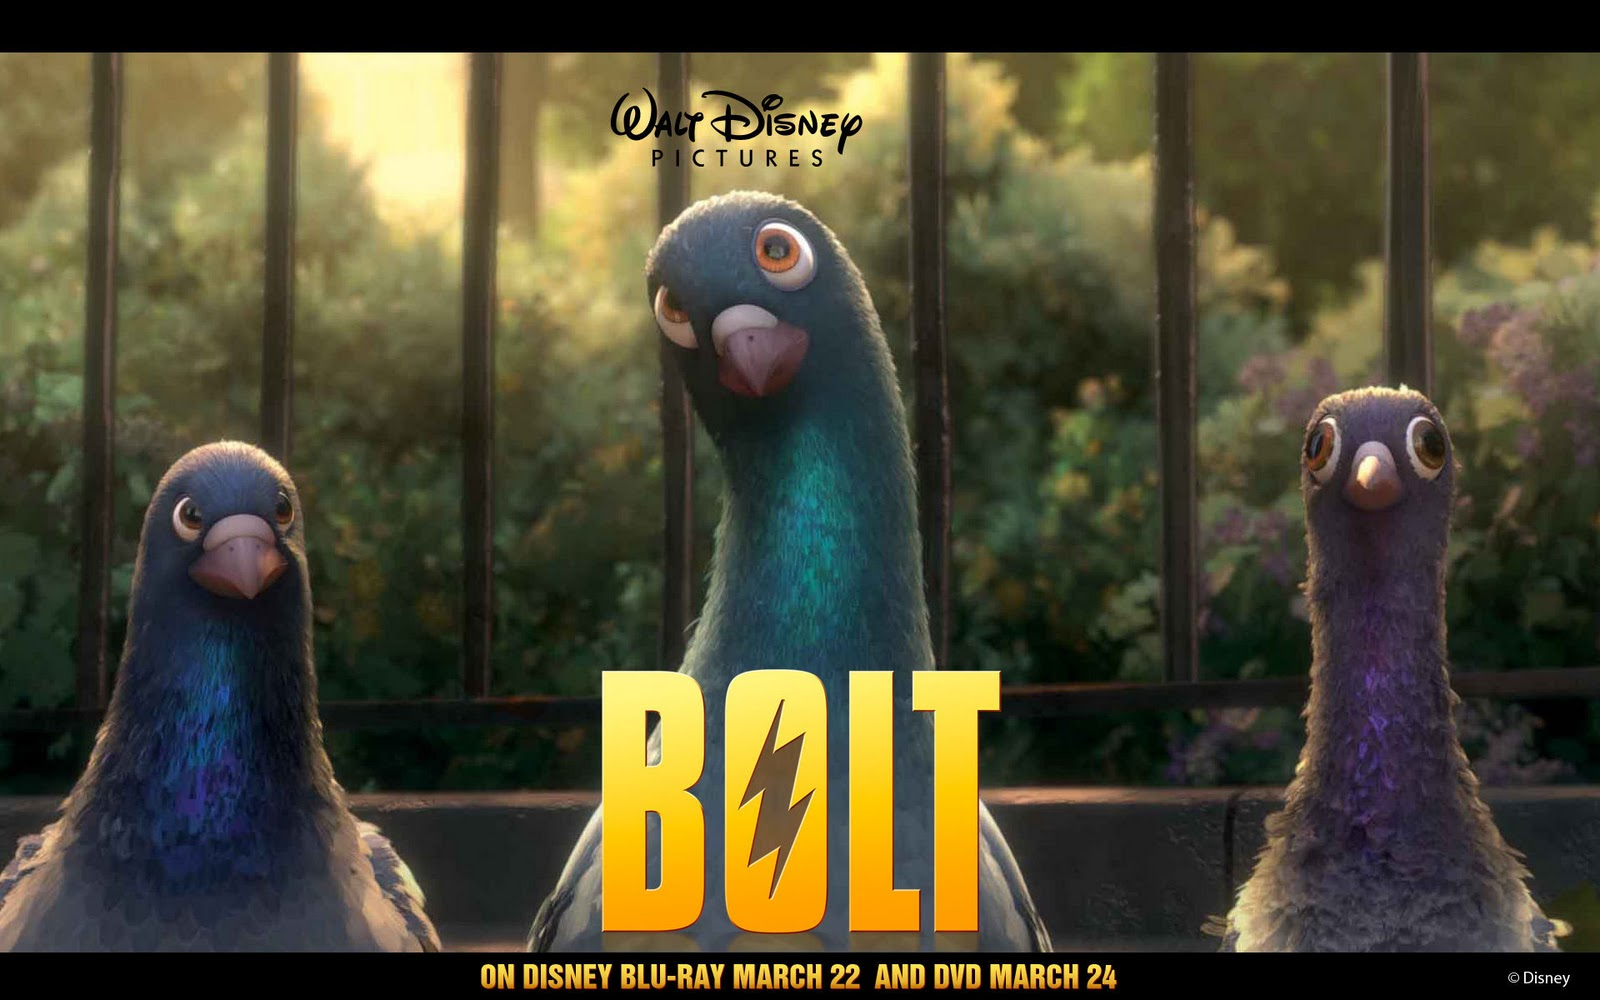 New Quotes Wallpaper Cartoons Bolt Movie Posters And Wallpaper